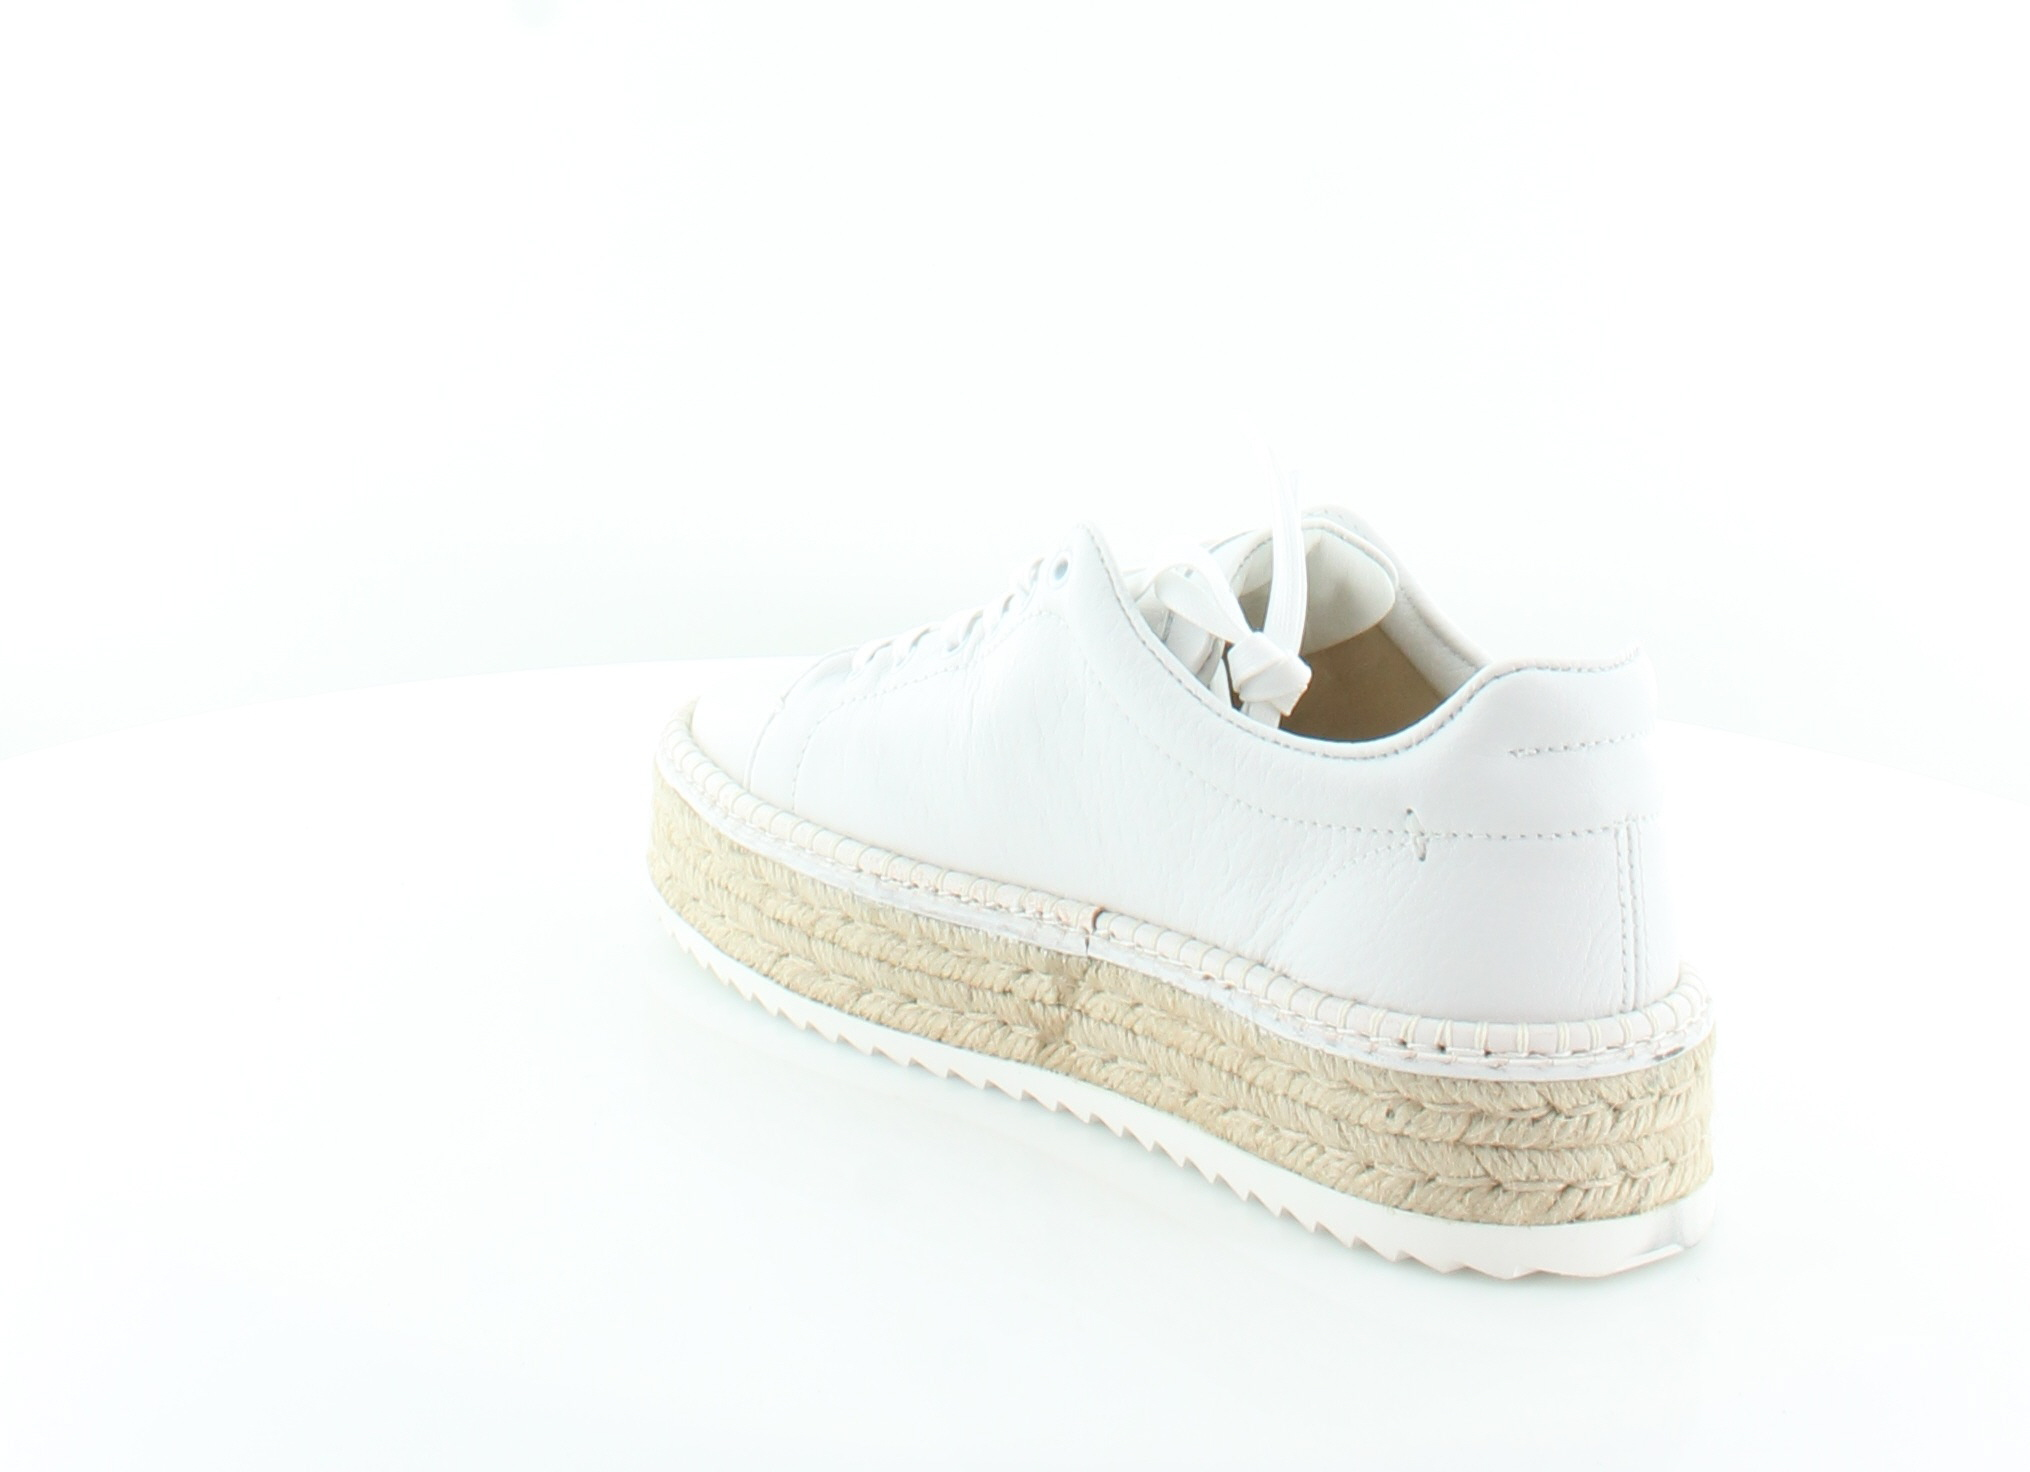 Rag & bone New Kent Kent Kent White Womens shoes Size 7 M Fashion Sneakers MSRP  350 727956